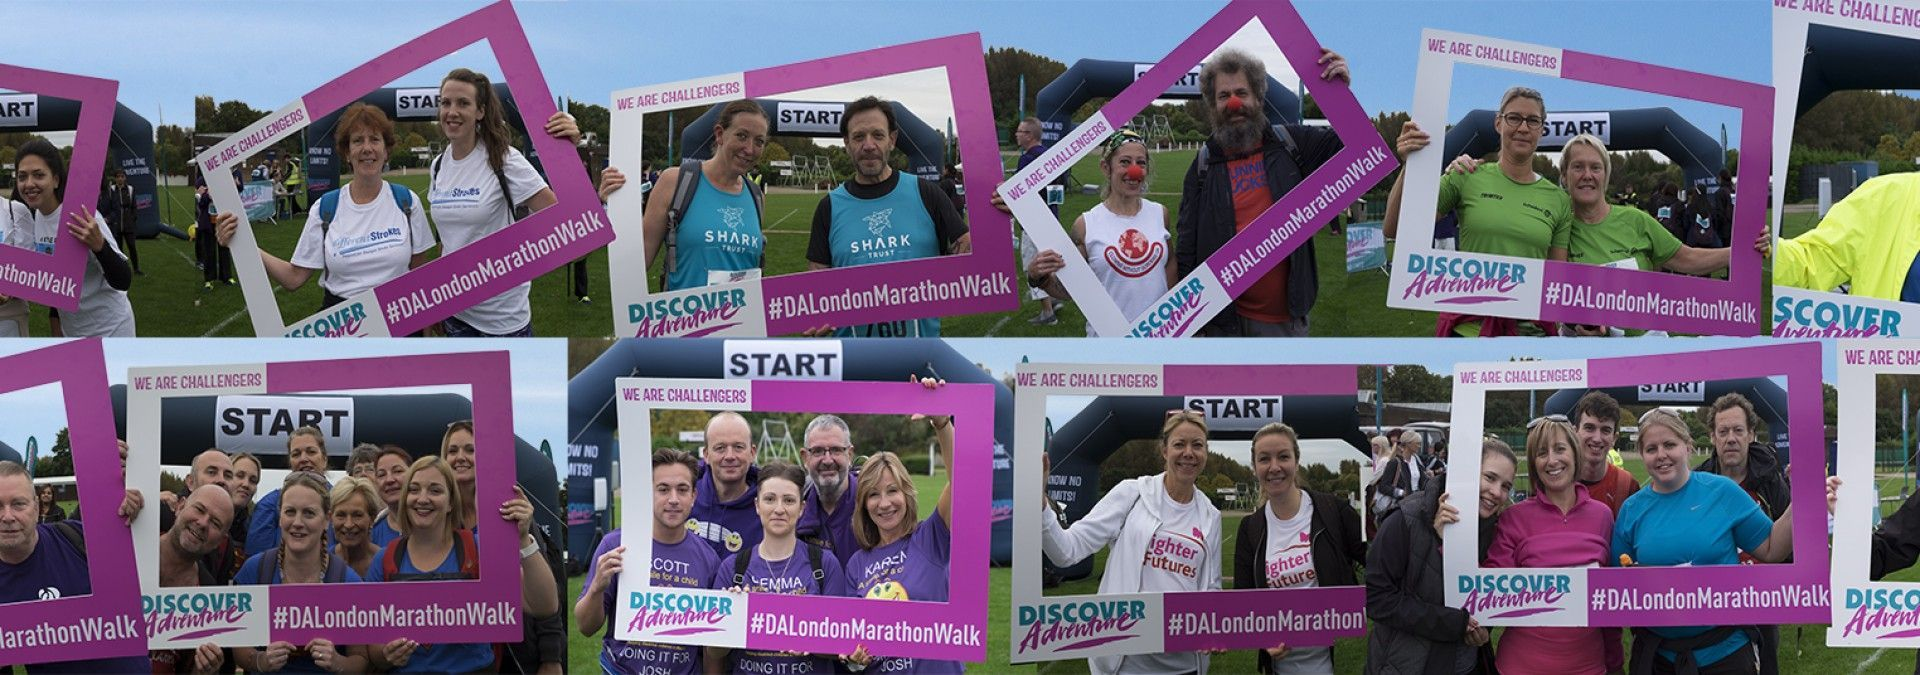 Marathon_Walk_London_frames.jpg